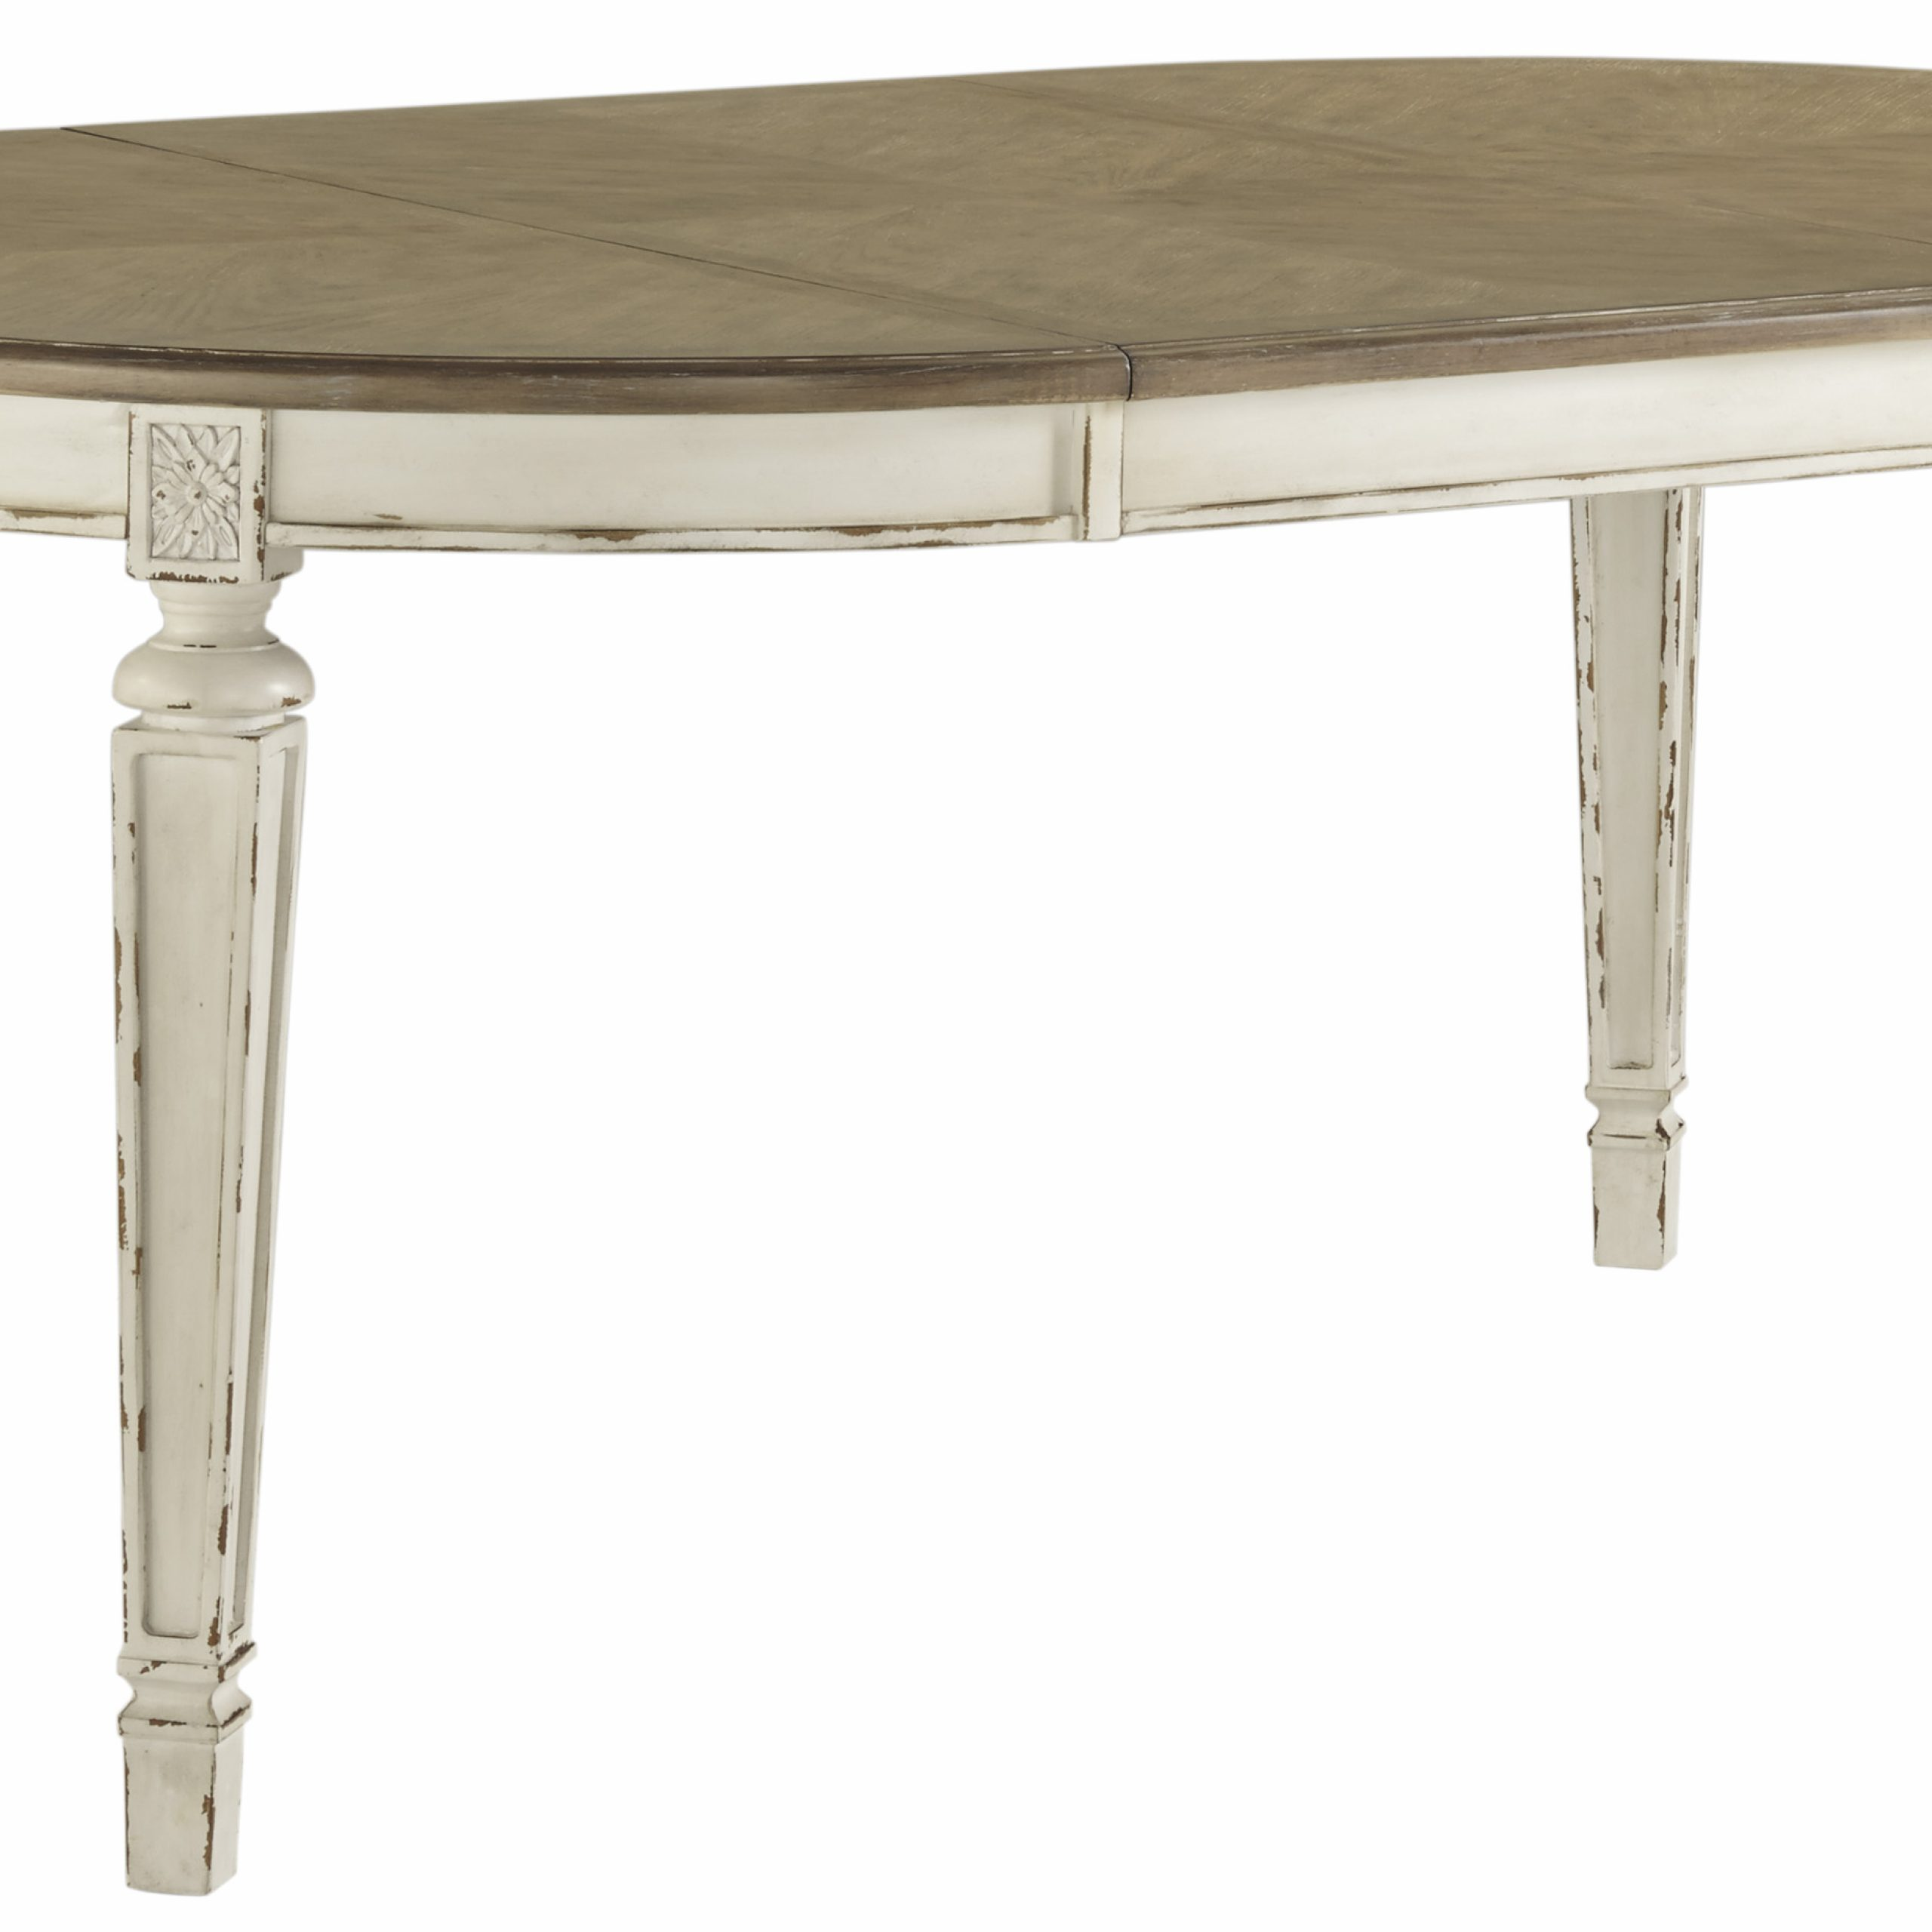 Ashley D743 35 Oval Dining Table Abc Warehouse With Current Benji 35'' Dining Tables (View 11 of 15)